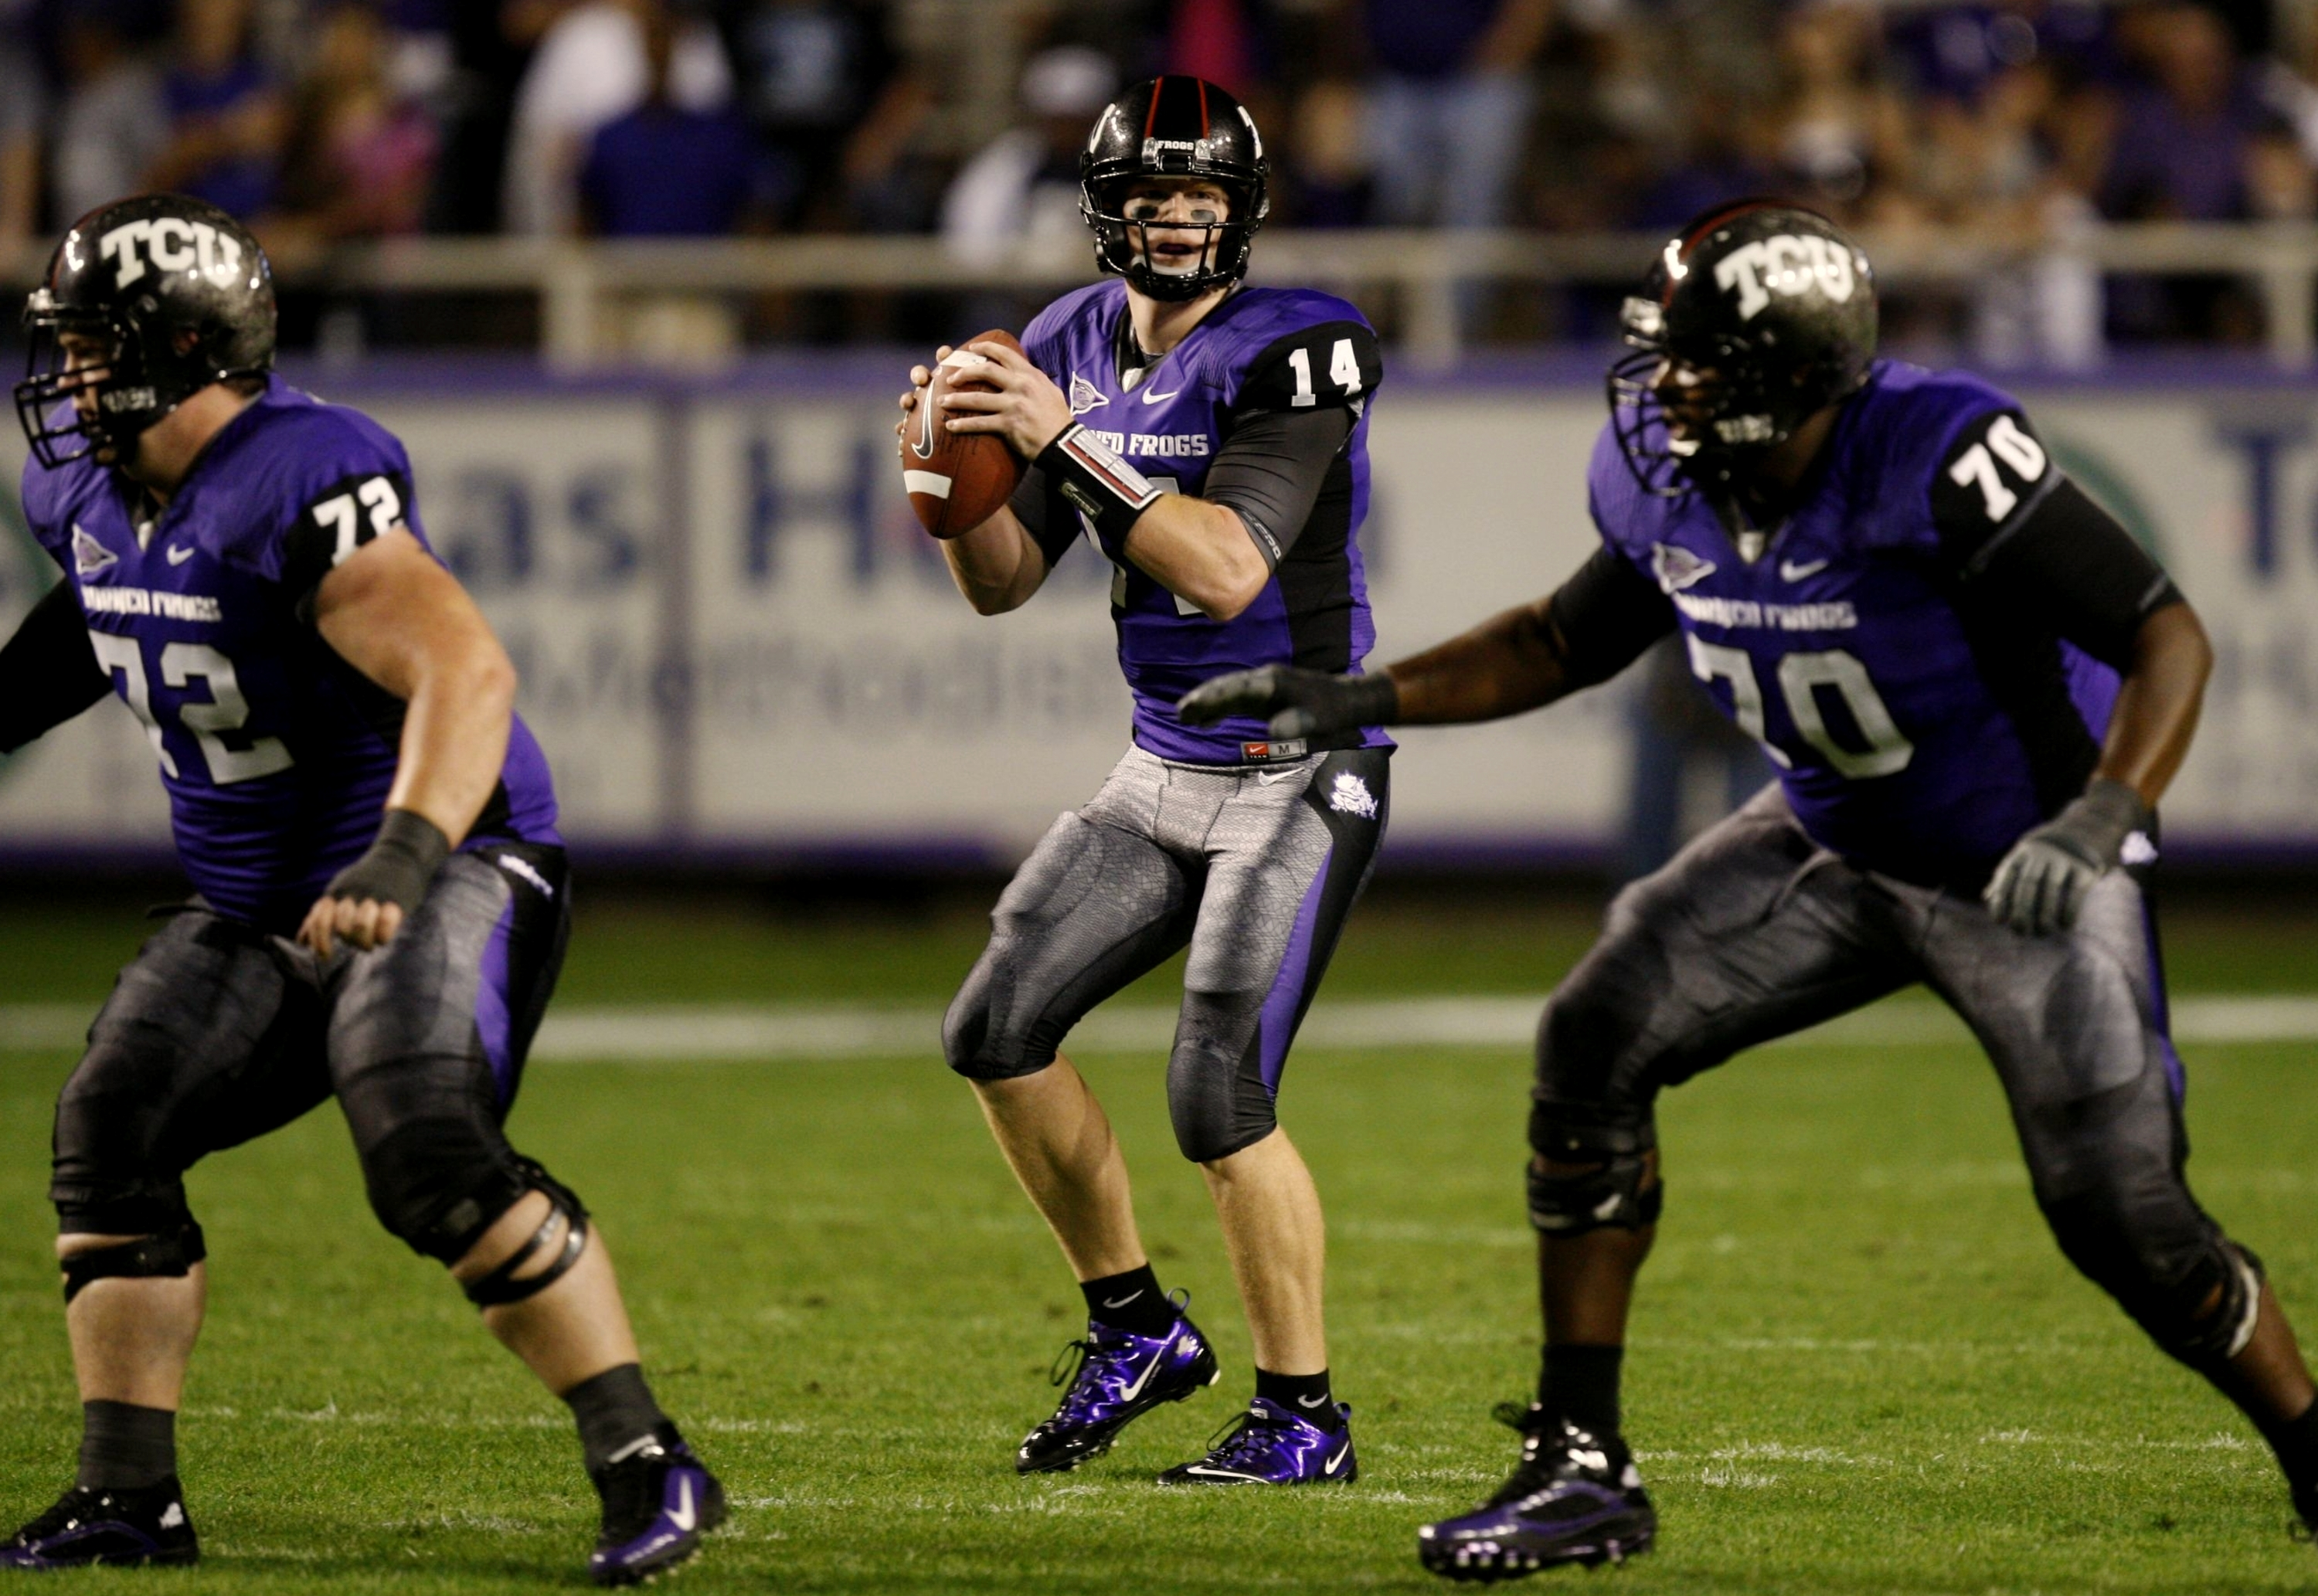 FORT WORTH, TX - NOVEMBER 14:  Quarterback Andy Dalton #14 of the TCU Horned Frogs looks to pass the ball in the first quarter against the Utah Utes at Amon G. Carter Stadium on November 14, 2009 in Fort Worth, Texas.  (Photo by Ronald Martinez/Getty Imag